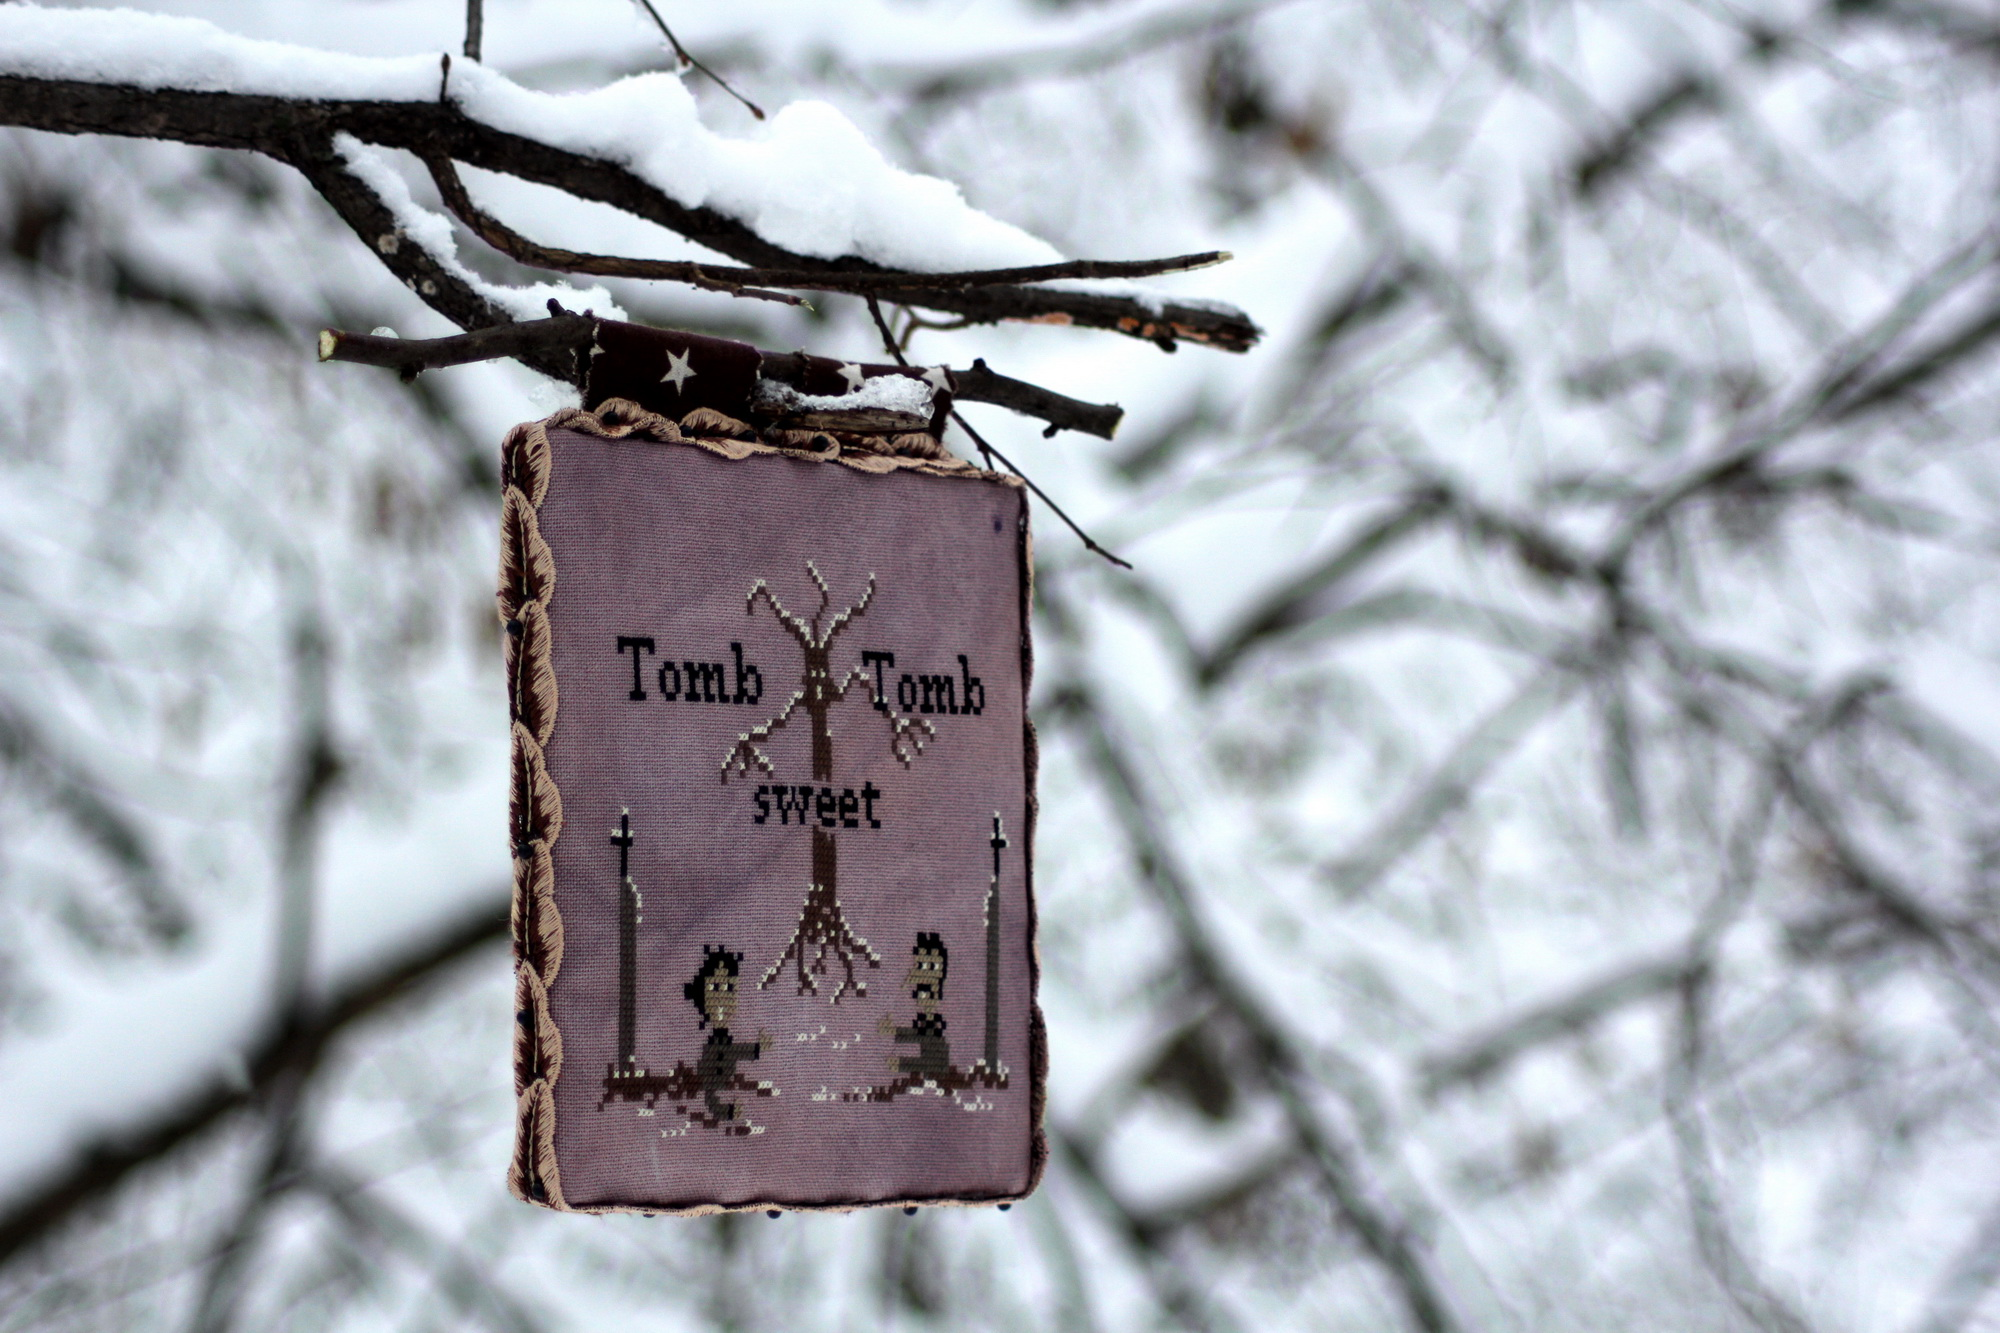 Tomb sweet Tomb - Fairy Wool in the Wood.